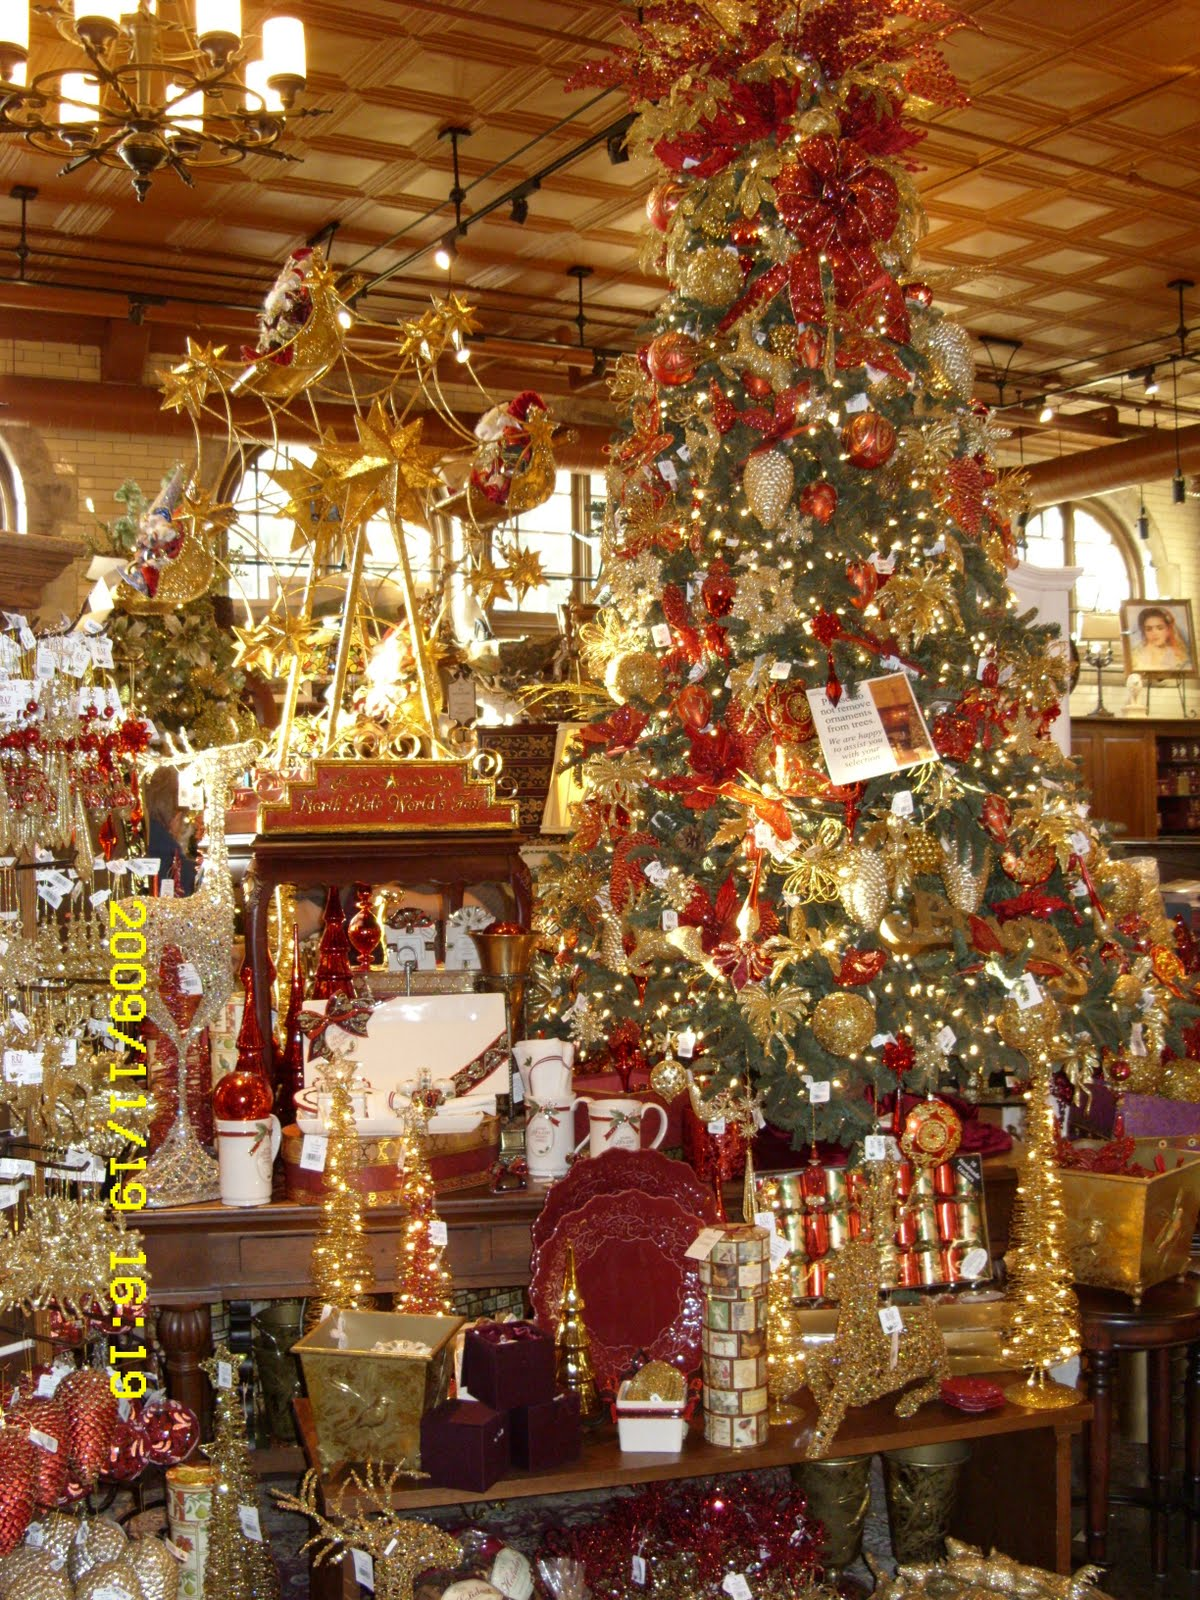 Christmas Decorations At Biltmore Estate | Holliday Decorations